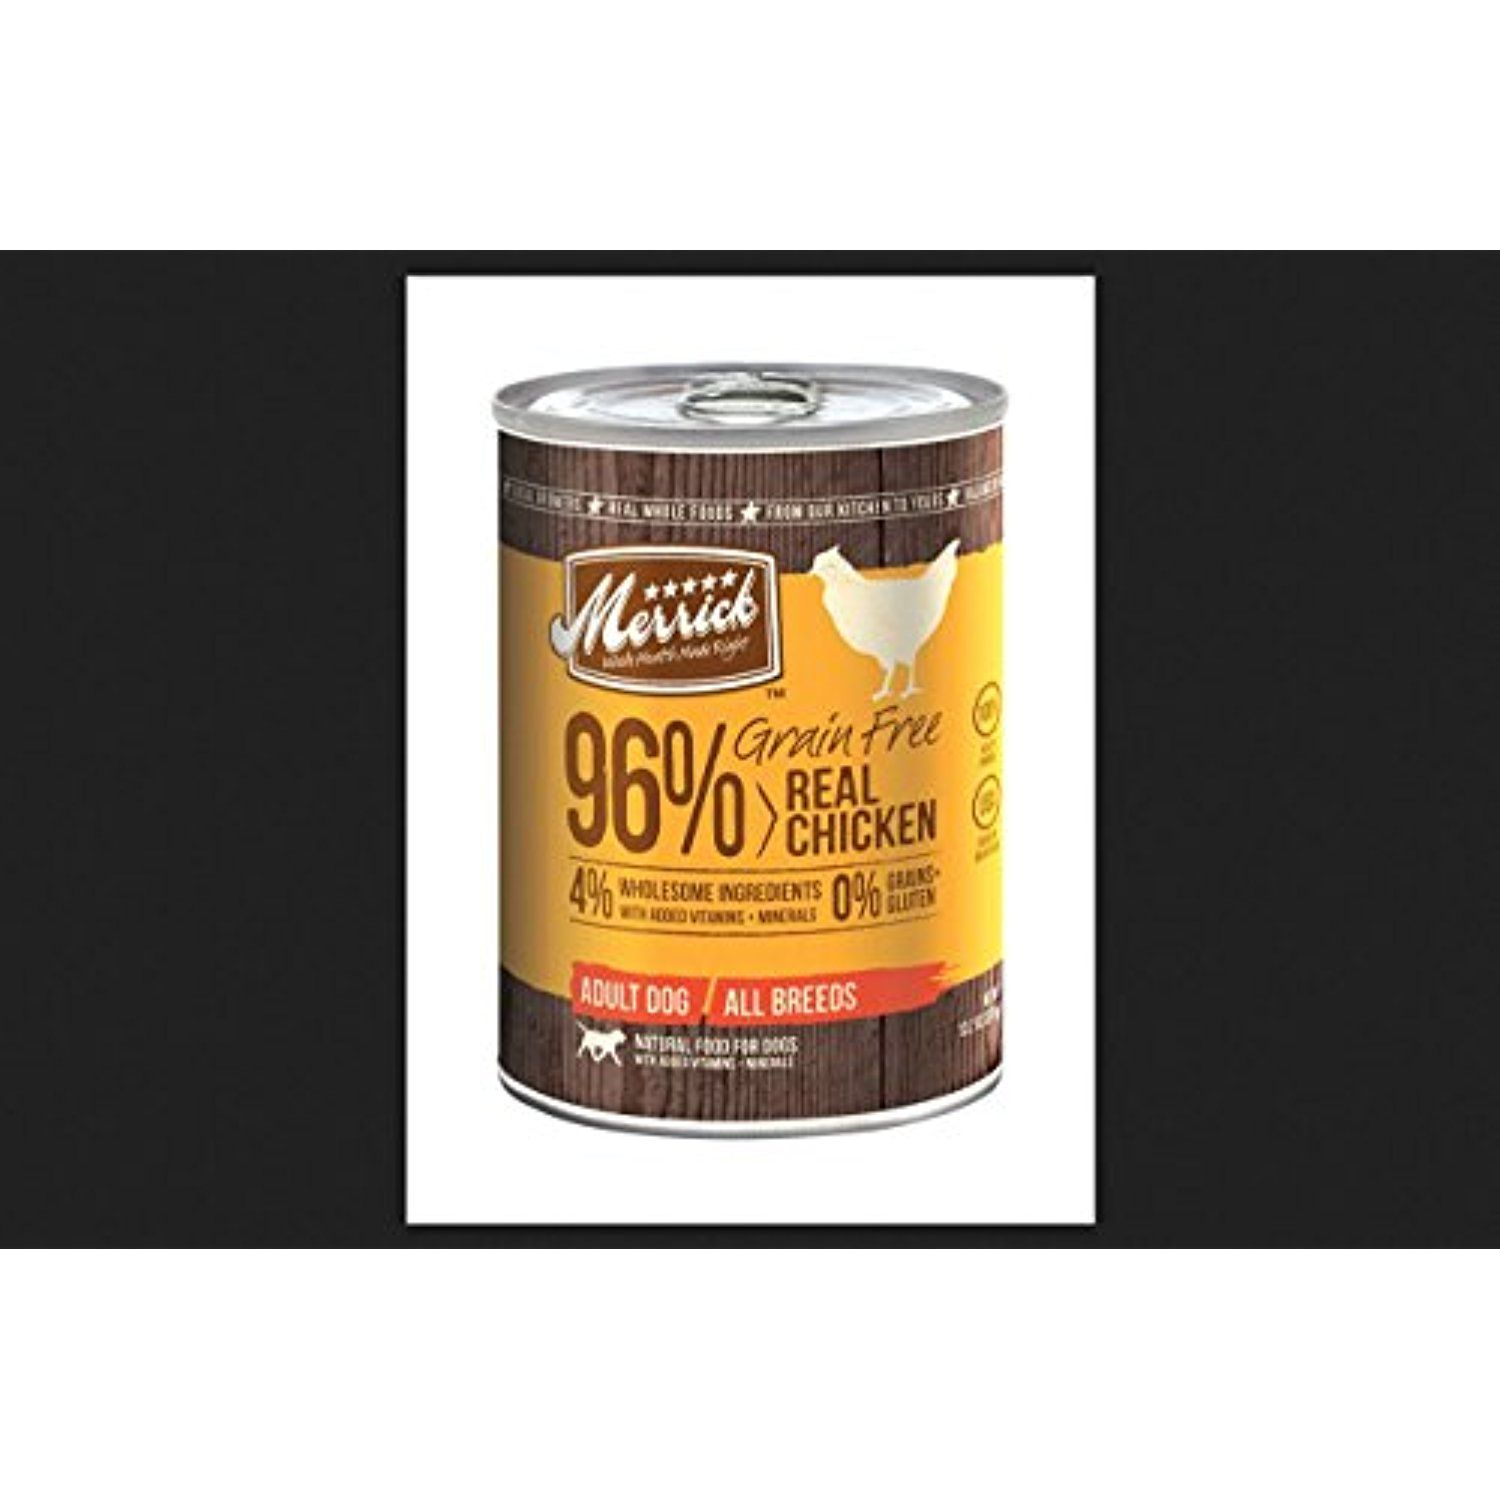 Dog Gf Chk Can 13 2oz By Merrick Mfrpartno 20484 You Can Click